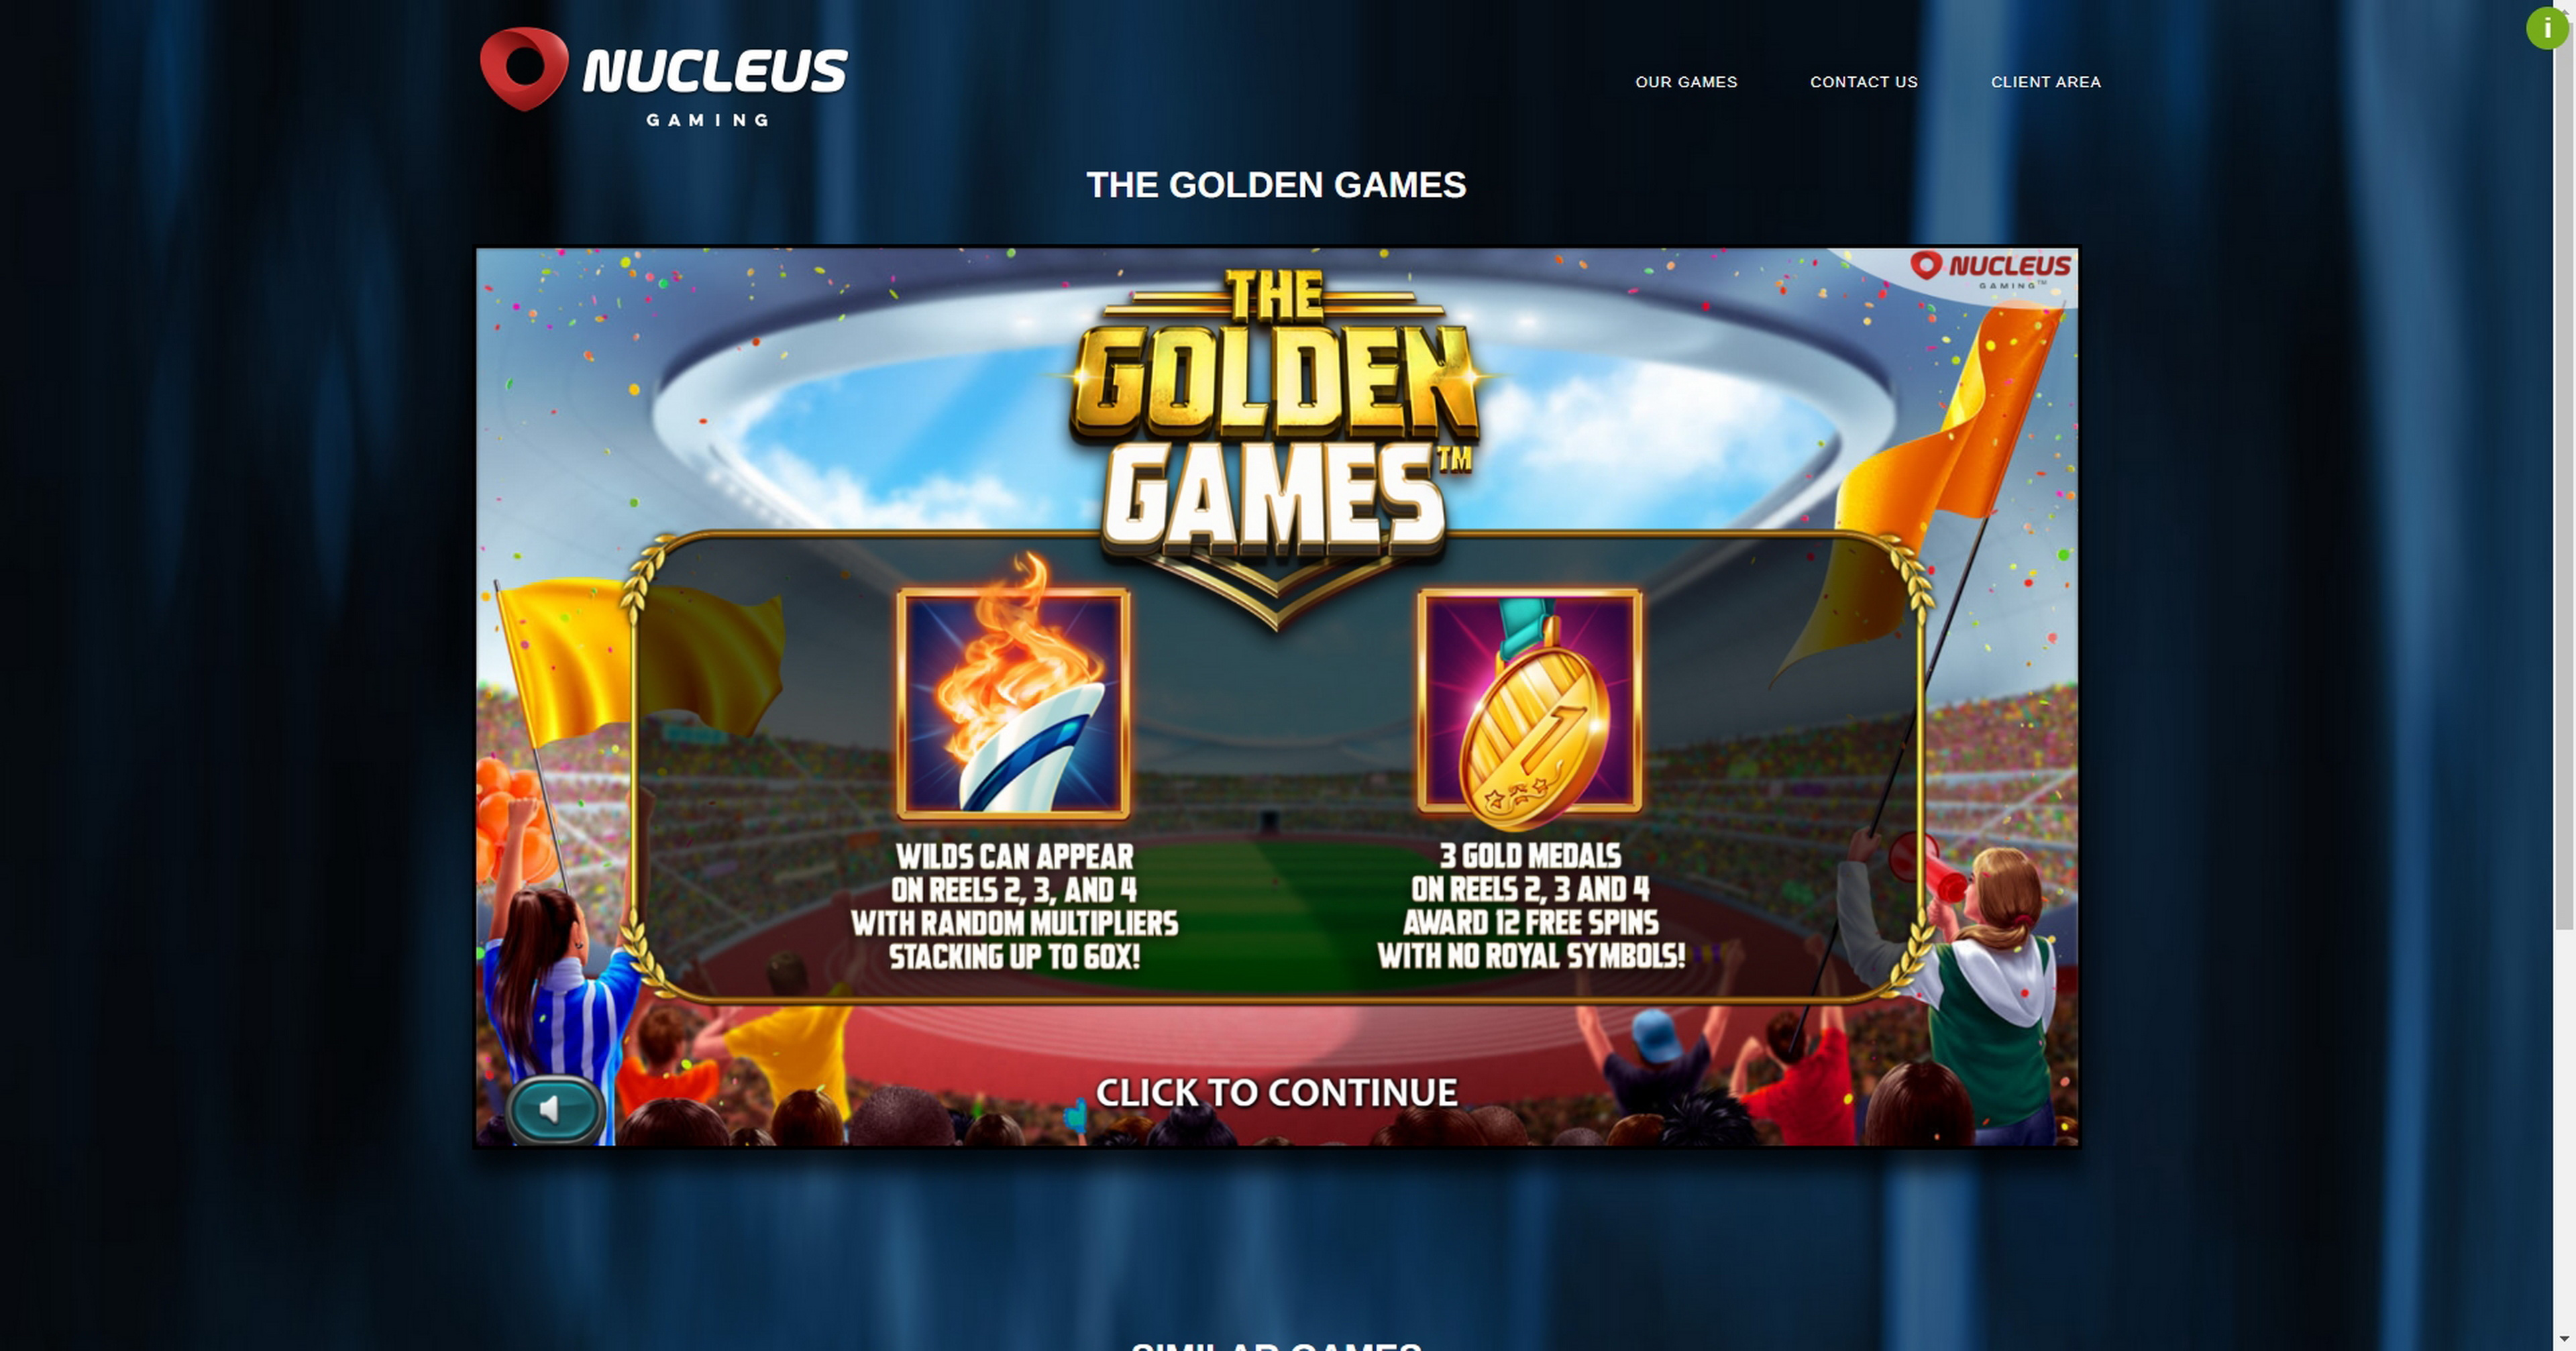 Pelaa The Golden Games ilmaista kasinopeliä Nucleus Gaming